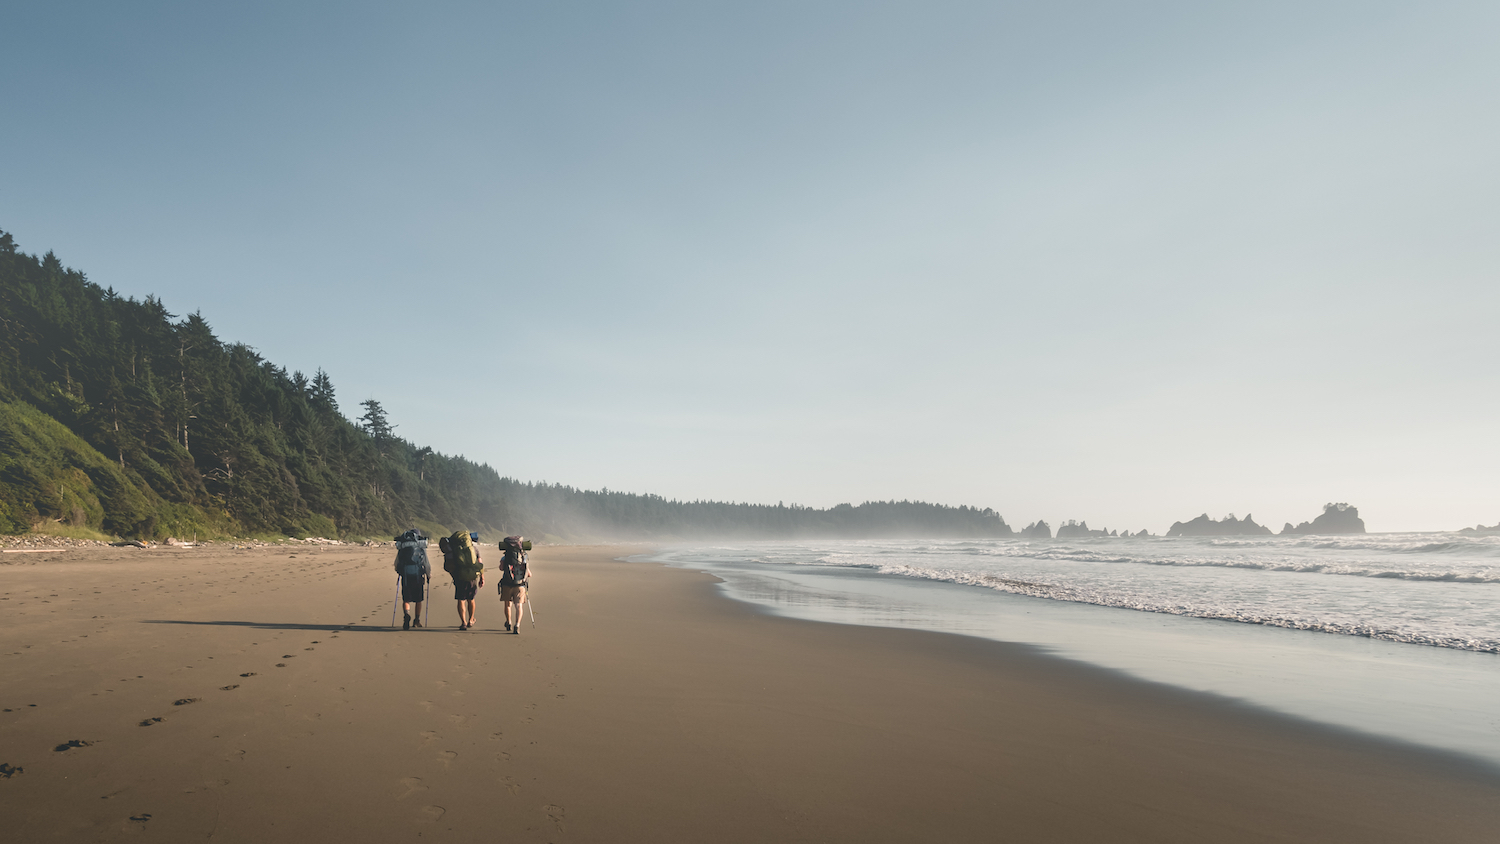 Hikers are hiking on the Shi Shi beach trail along the pacific coast in Olympic National Park, Washington State, USA